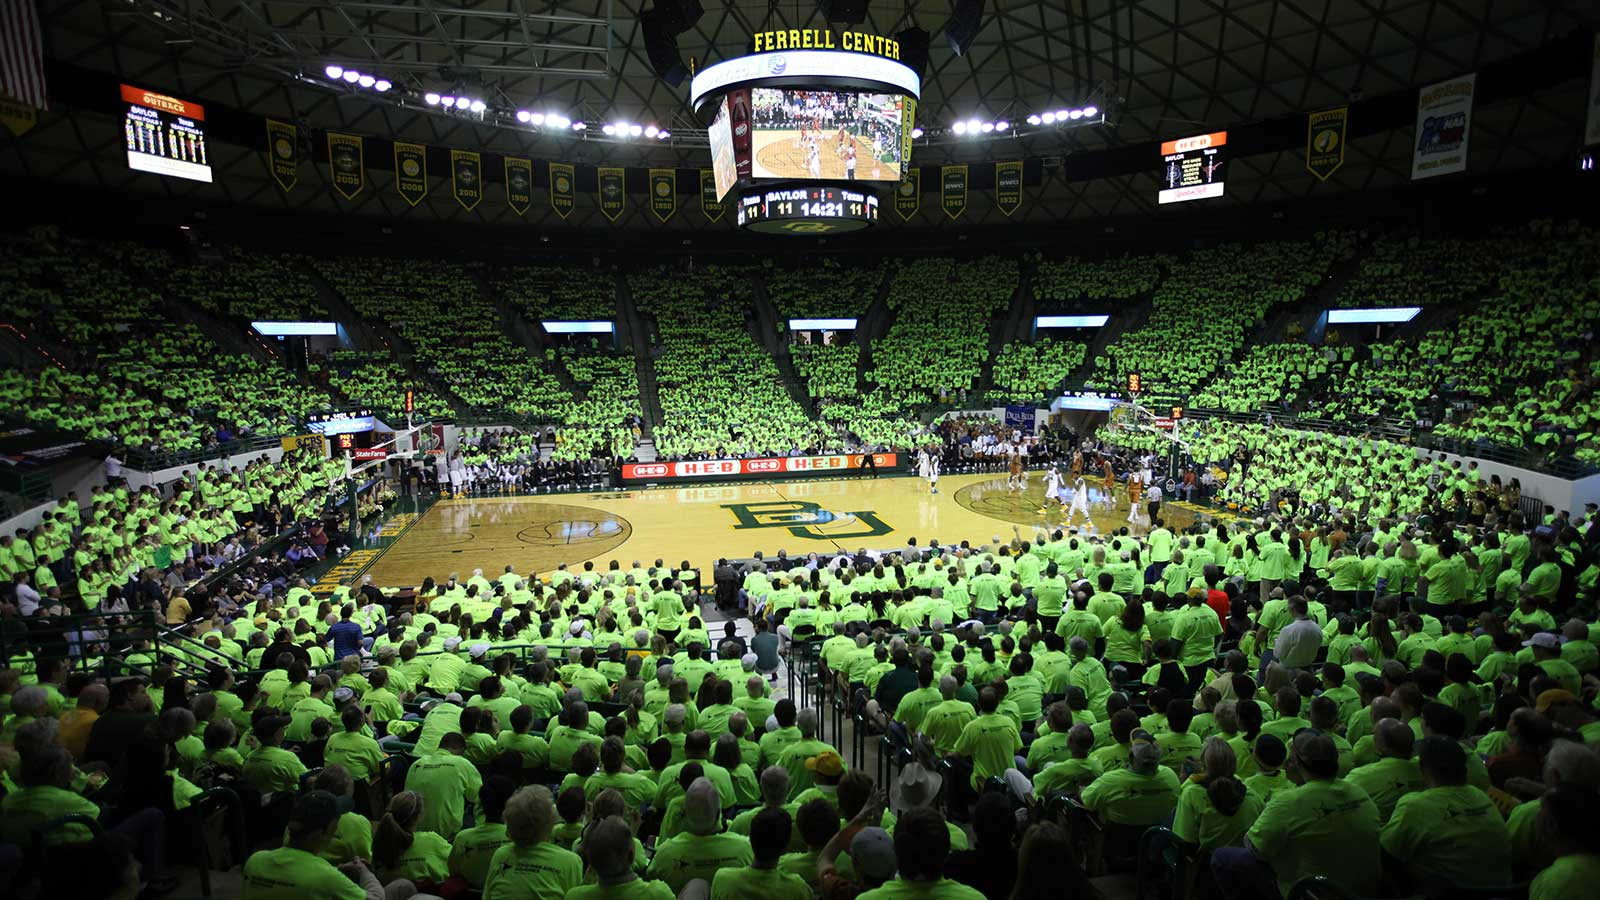 The Ferrell Center, home to Baylor's basketball and volleyball programs for more than 20 years, was built in 1988. The gold-domed Ferrell Center is located on a 14-acre tract on the corner of University Parks Drive and LaSalle Avenue.